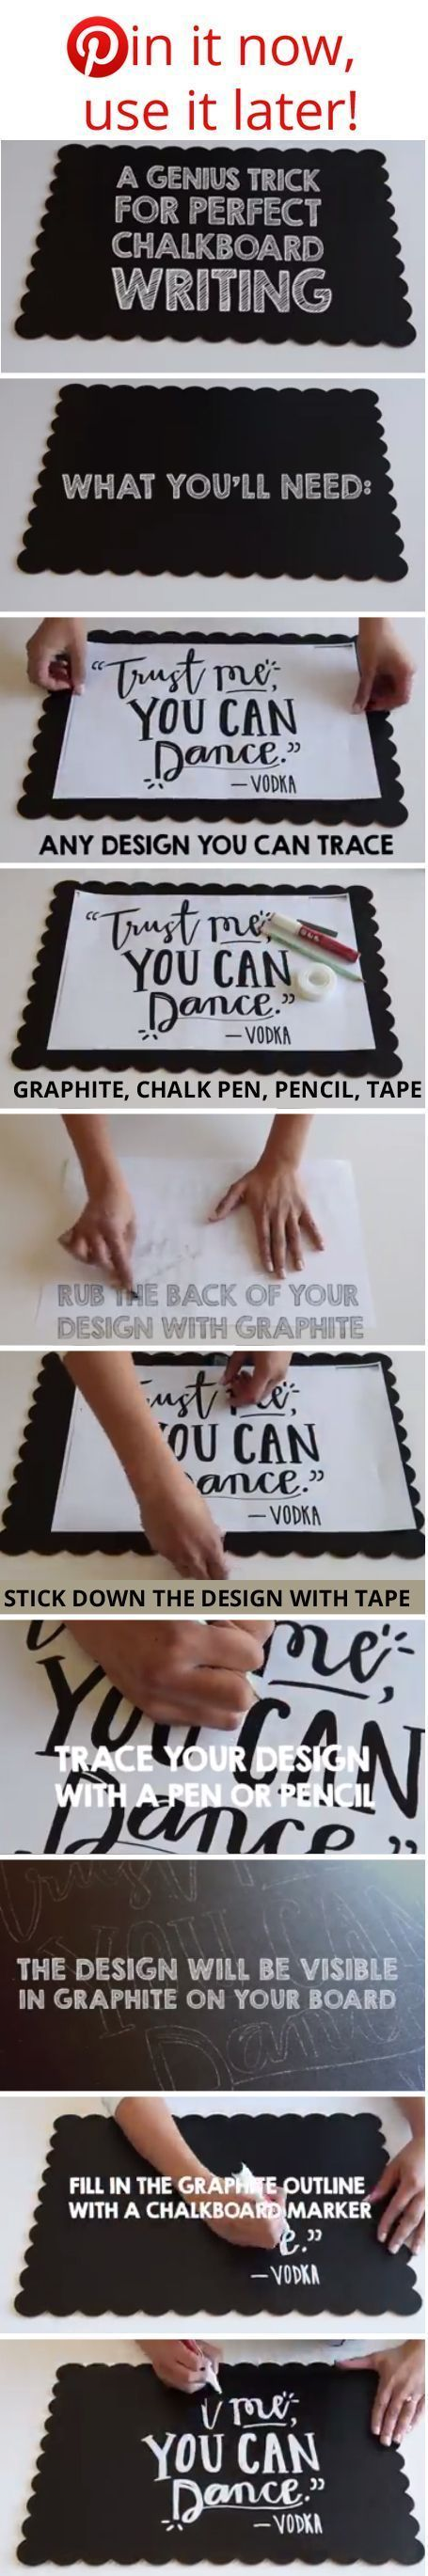 How To Write Nicely On A Blackboard / Chalkboard, fab for making wedding signs – Click through to see the video (Chalkboard Writing How To Video!)    Find chalkboards and chalk markers at http://www.afloral.com/